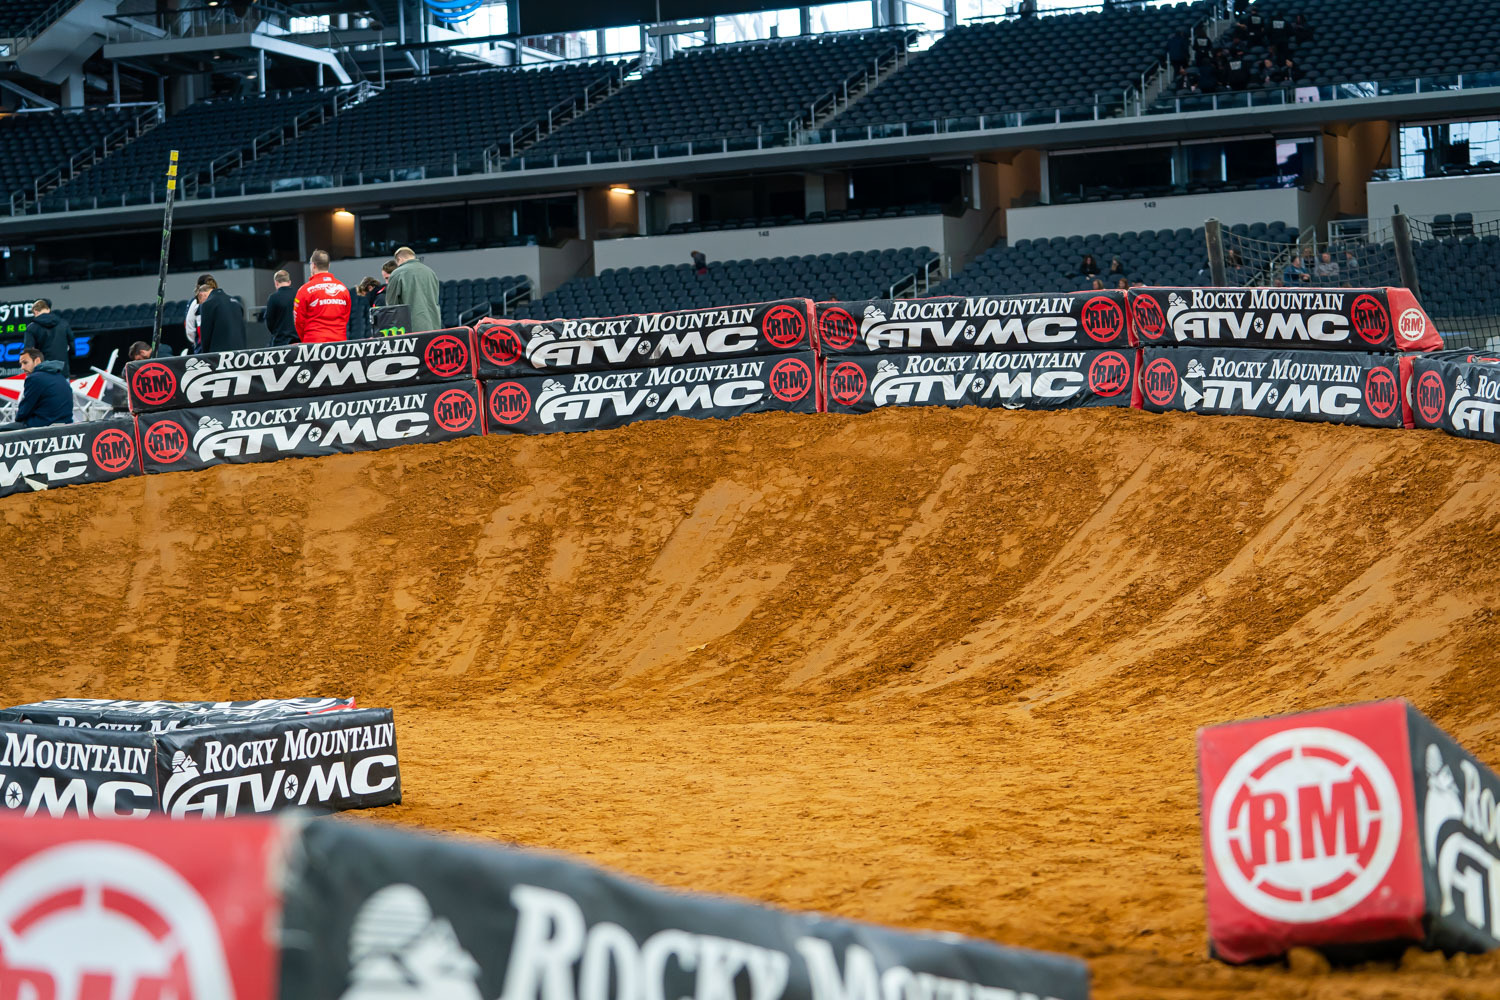 2020-ARLINGTON-SUPERCROSS_KICKSTART_0010